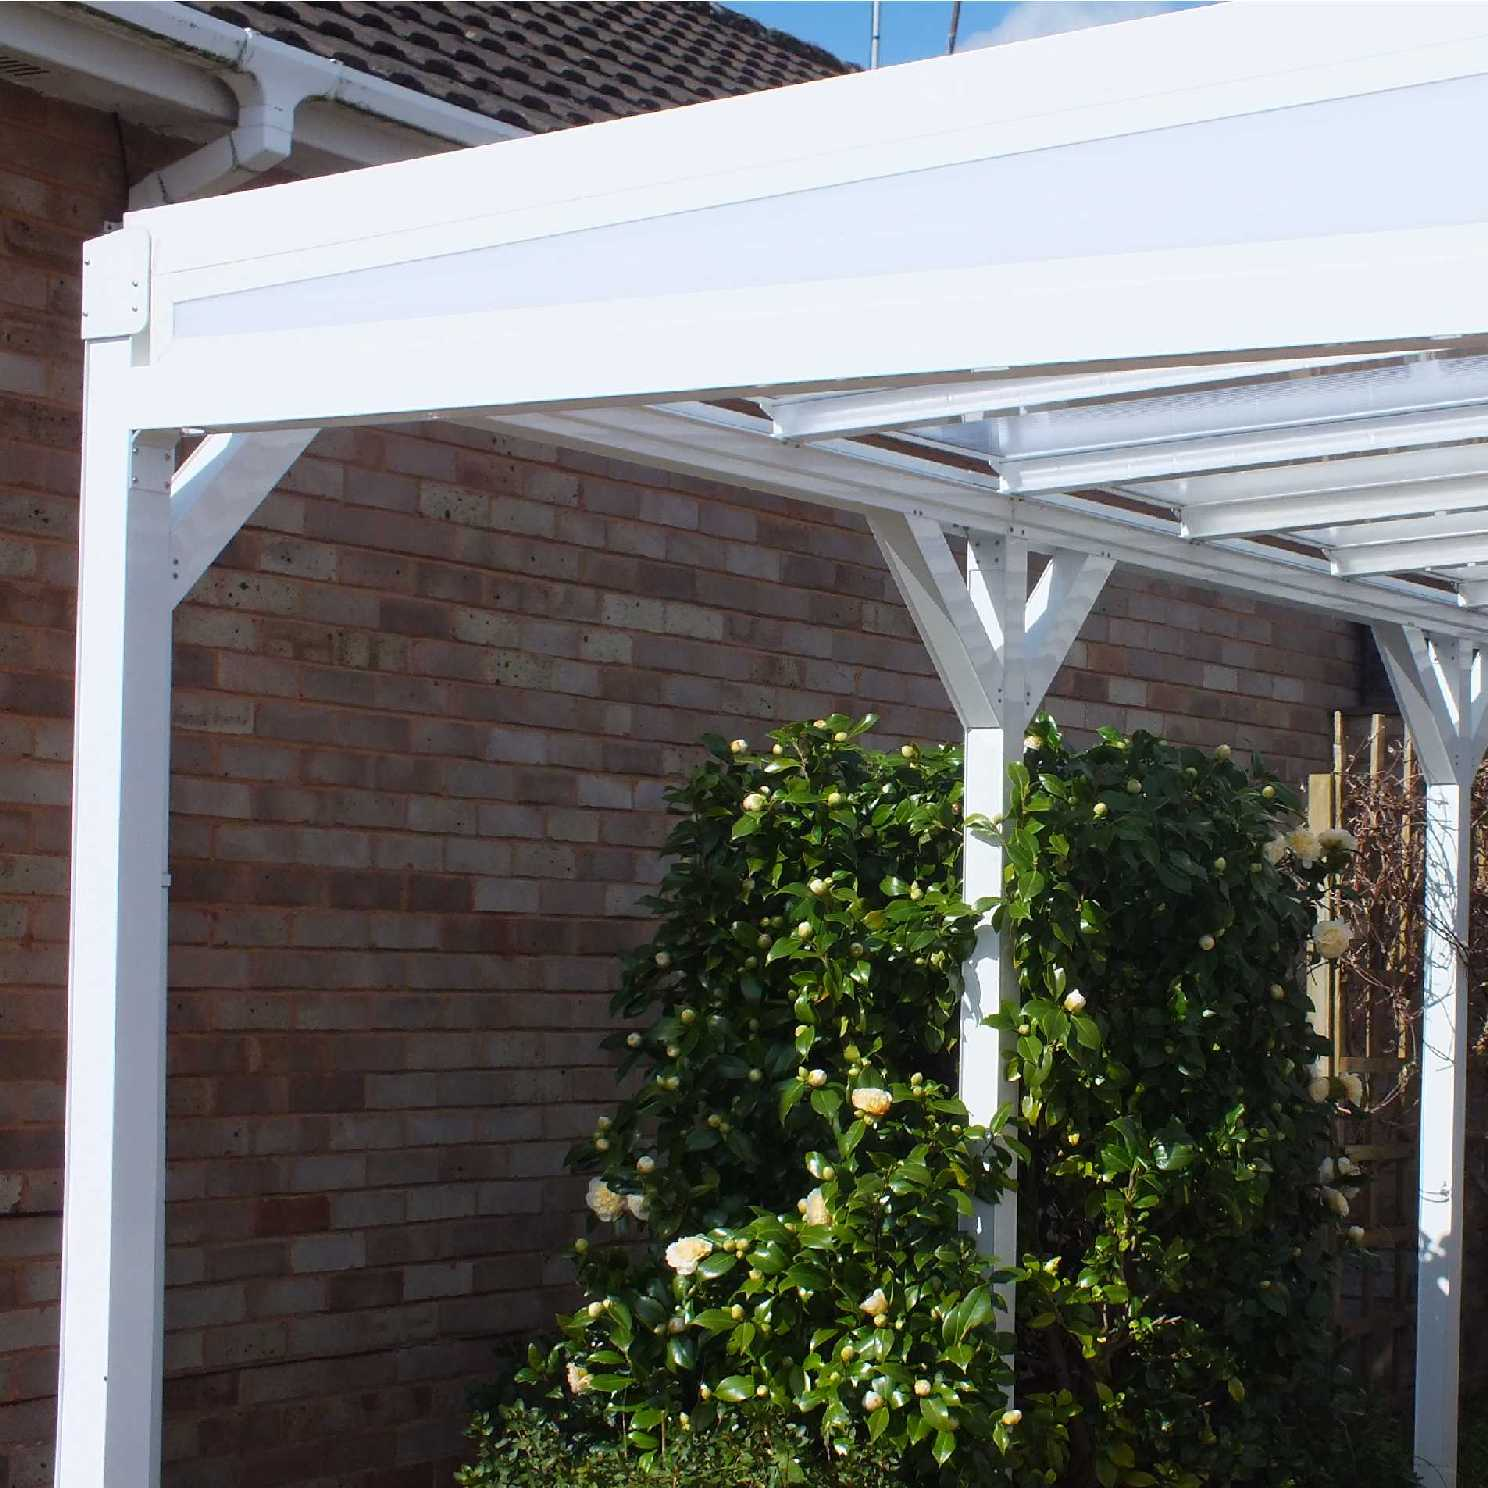 Omega Smart Lean-To Canopy, Anthracite Grey, 16mm Polycarbonate Glazing - 12.0m (W) x 1.5m (P), (5) Supporting Posts from Omega Build